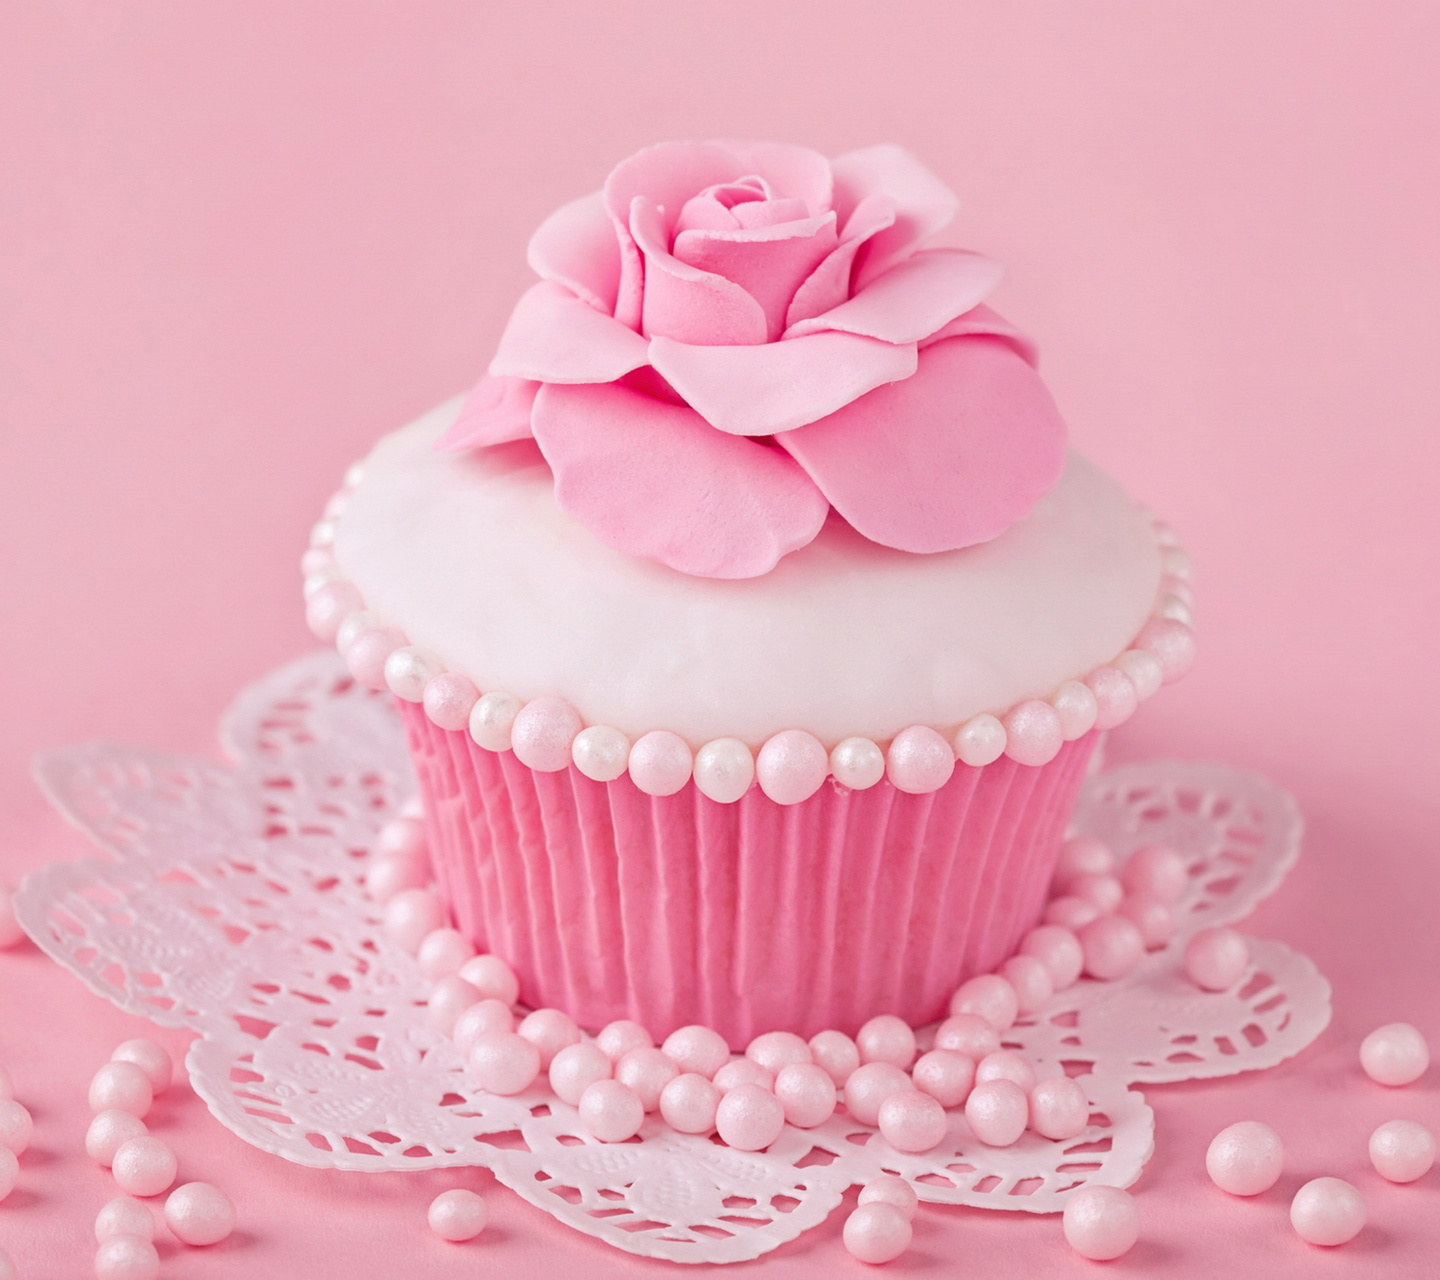 Food images Cupcake HD wallpaper and background photos